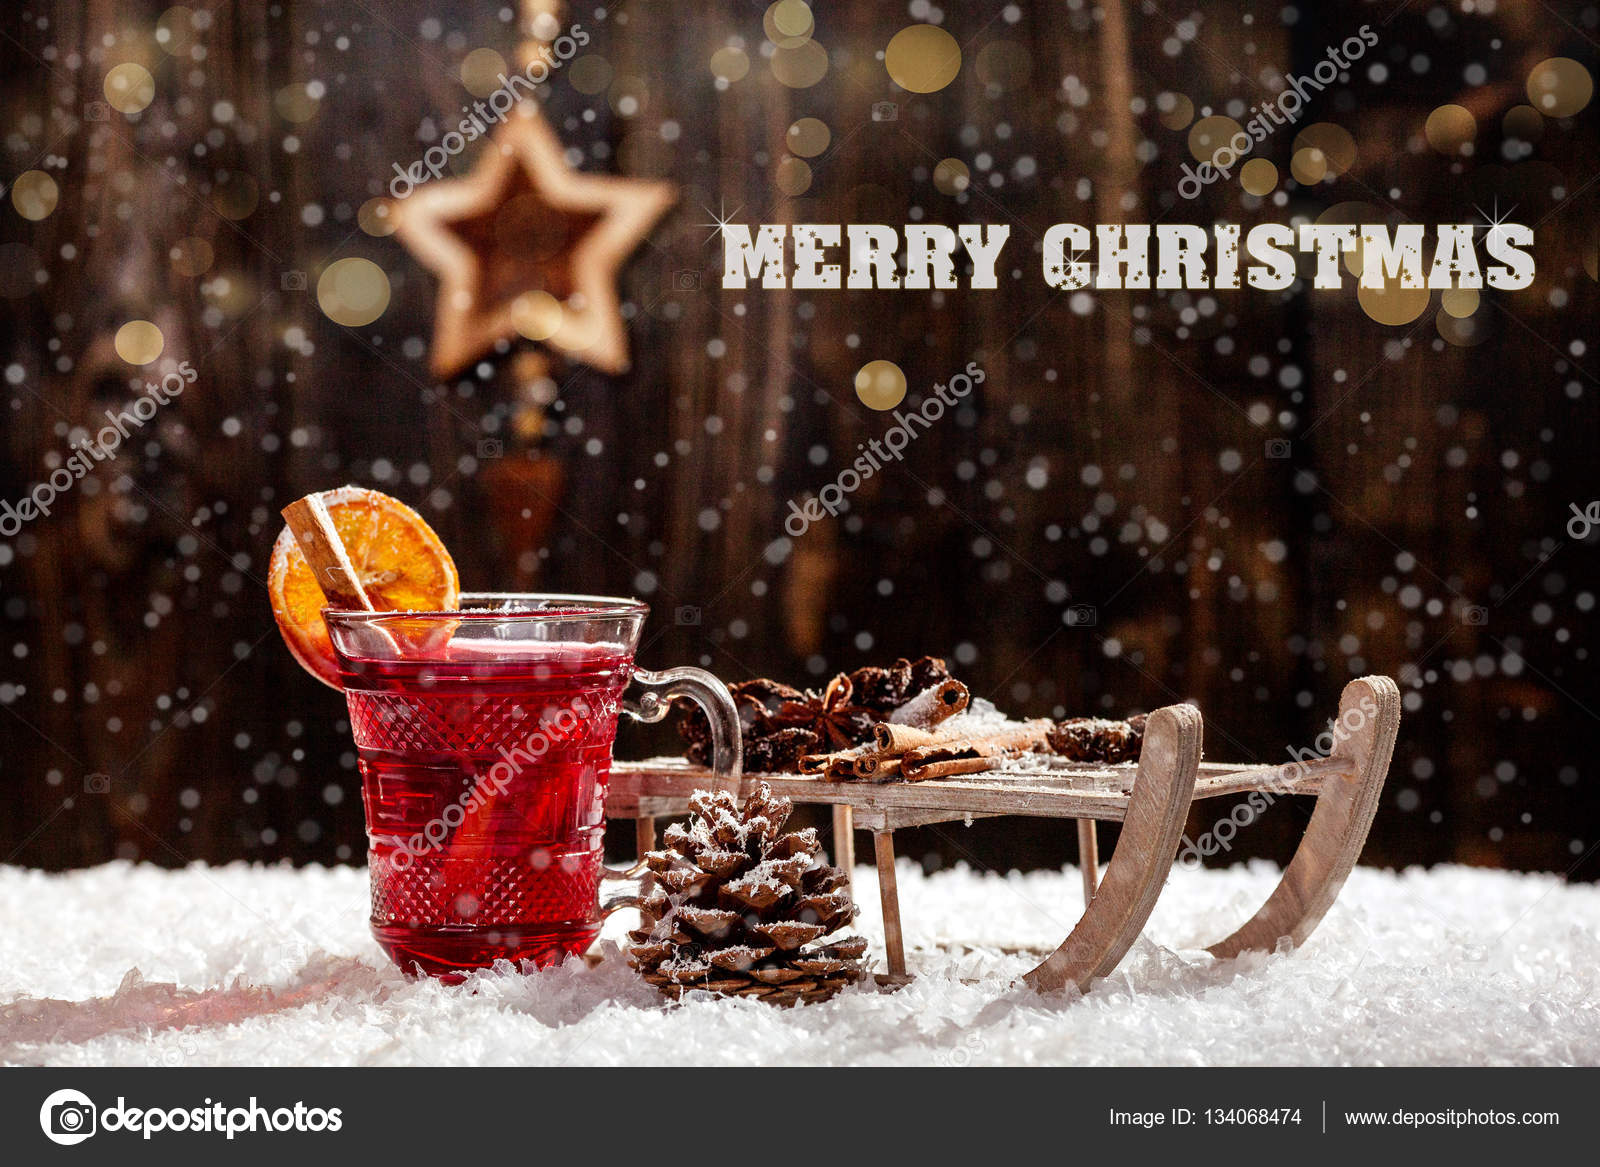 Stylish Rustic Winter Wallpaper With Anise Cinnamon And Pine Cones Merry Christmas Stock Photo